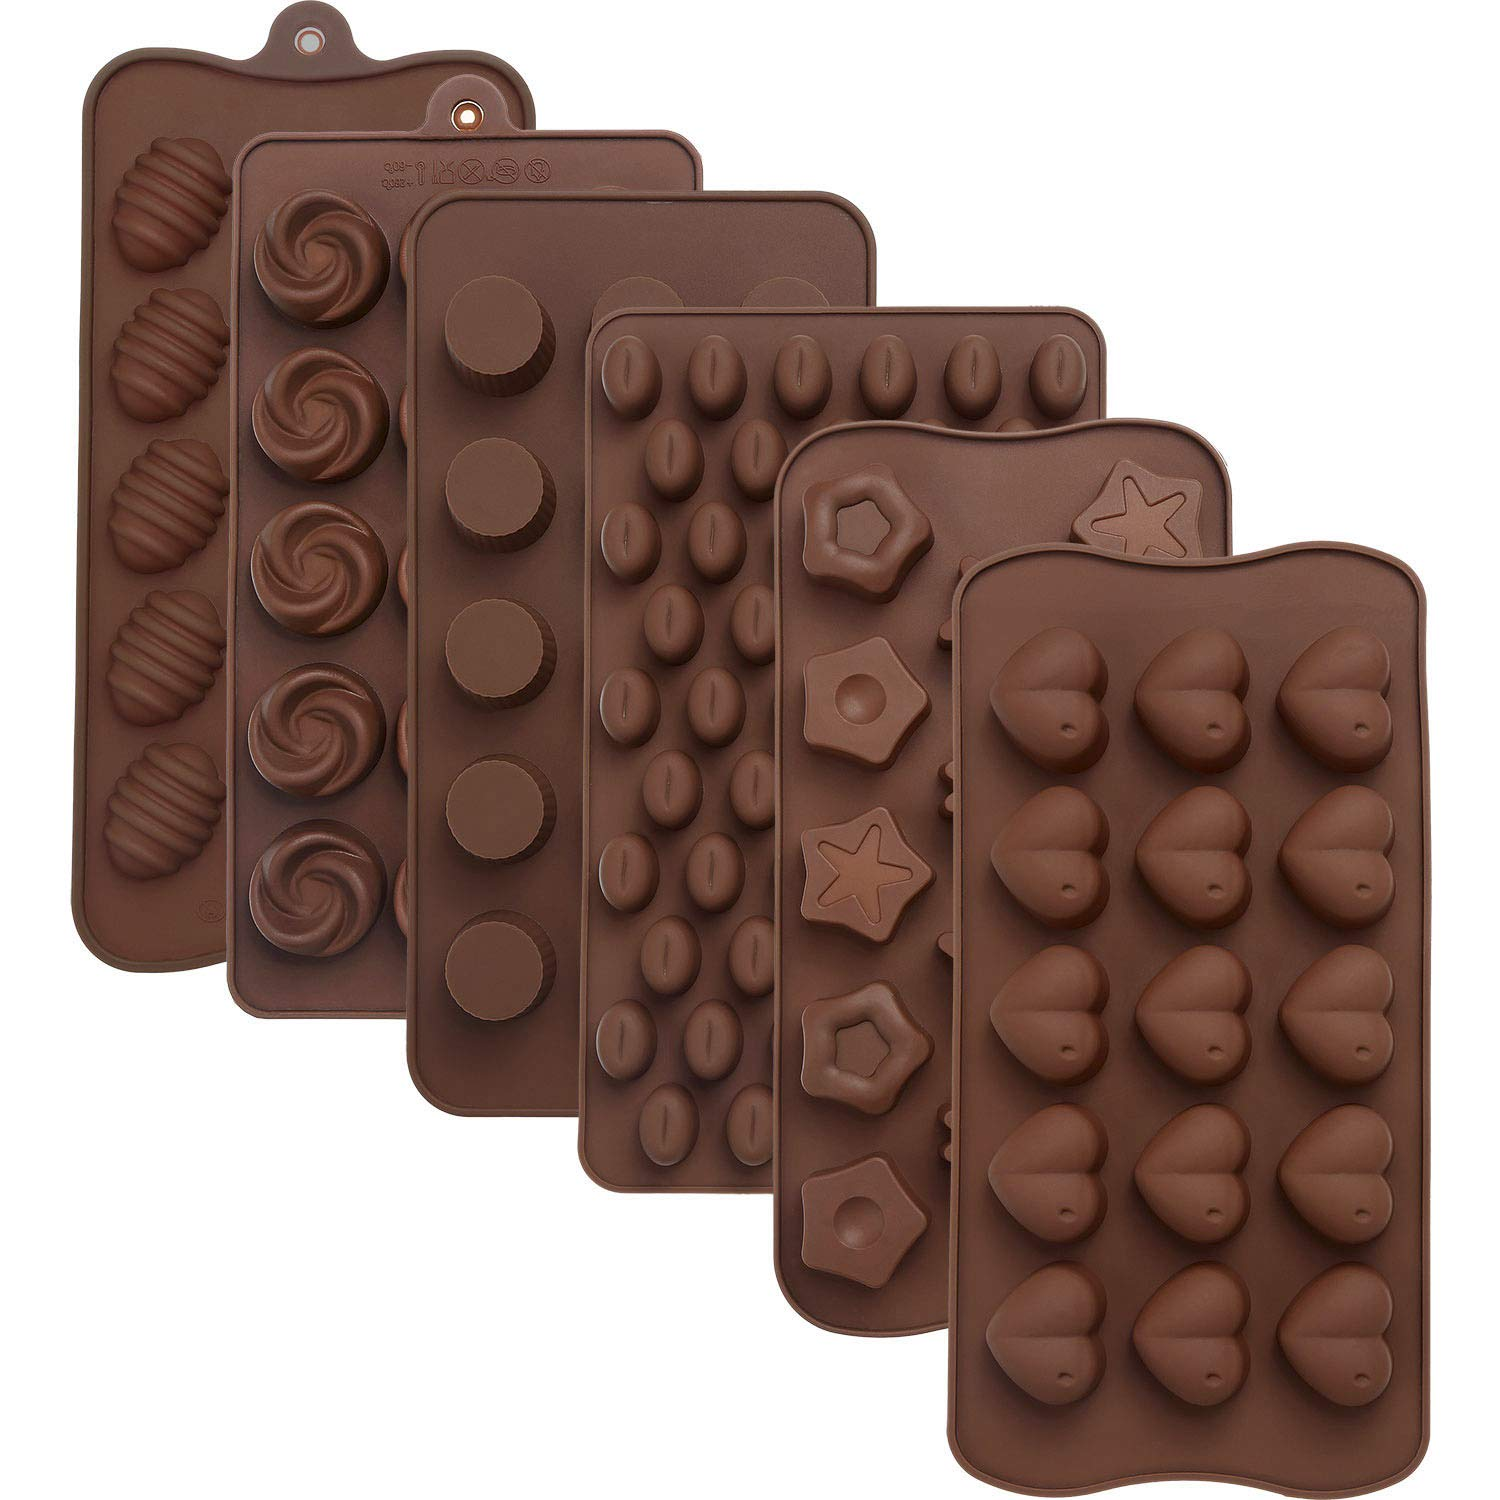 Maxdot 6 Pieces Silicone Chocolate Mold Cake Cookie Mould Candy Baking Mold for Chocolate Cake DIY